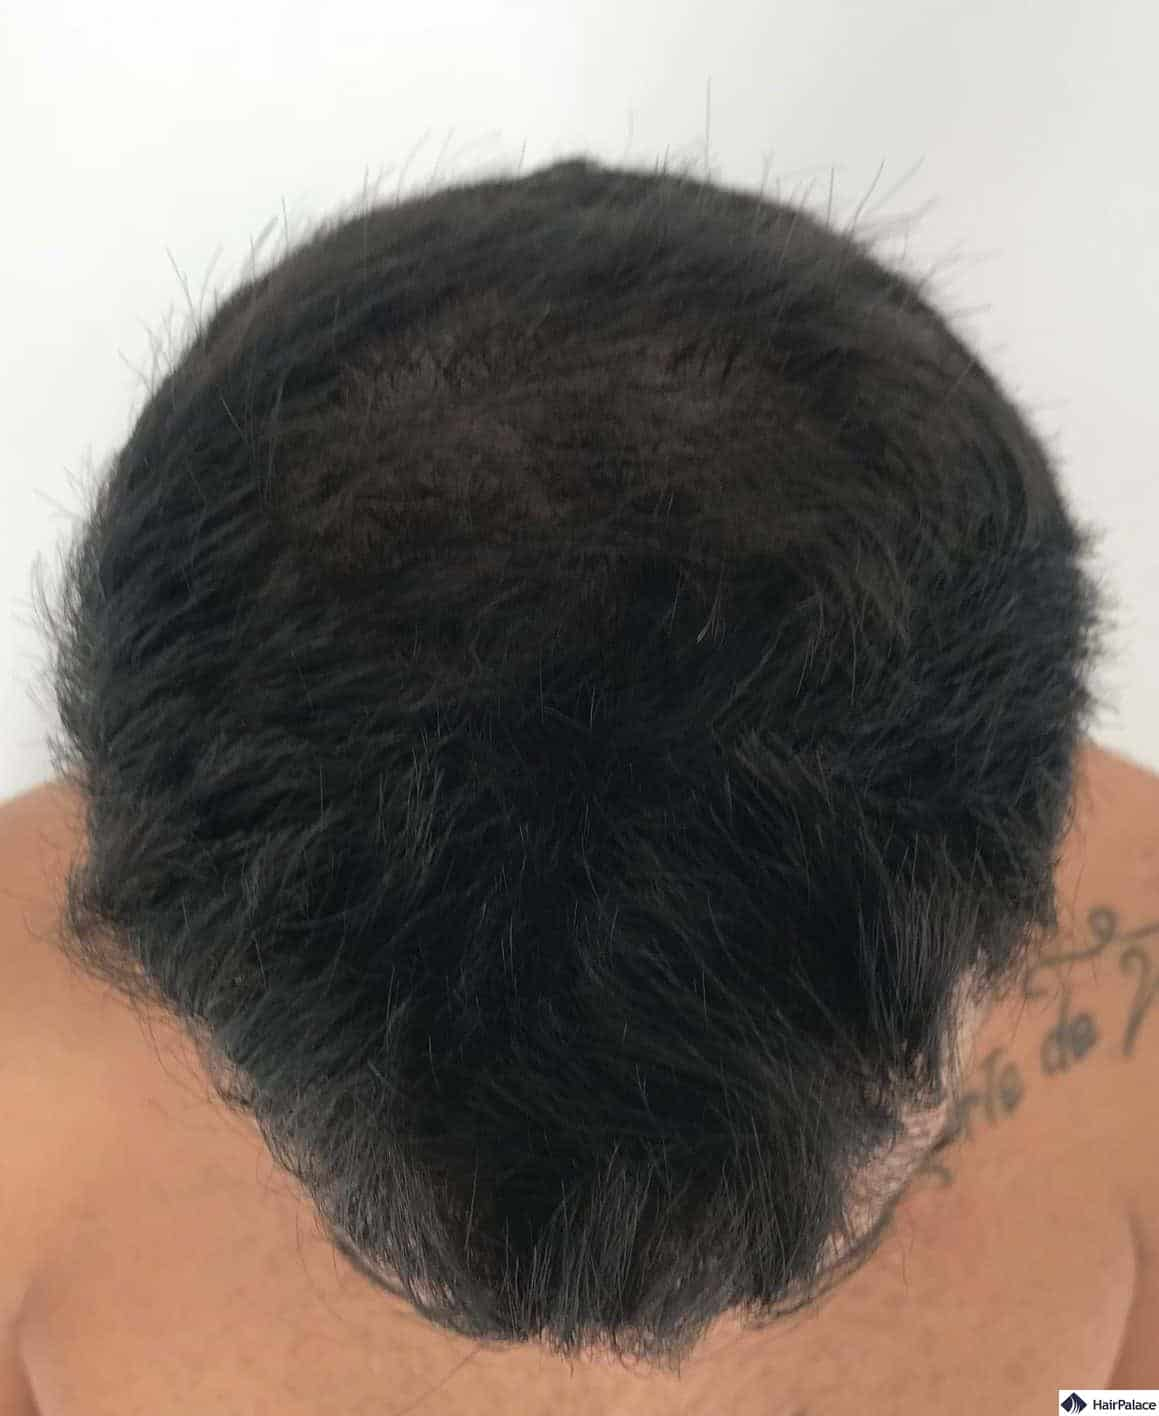 top of Yohann's head 6 months after the surgery with 50% of the implanted hairs grown out